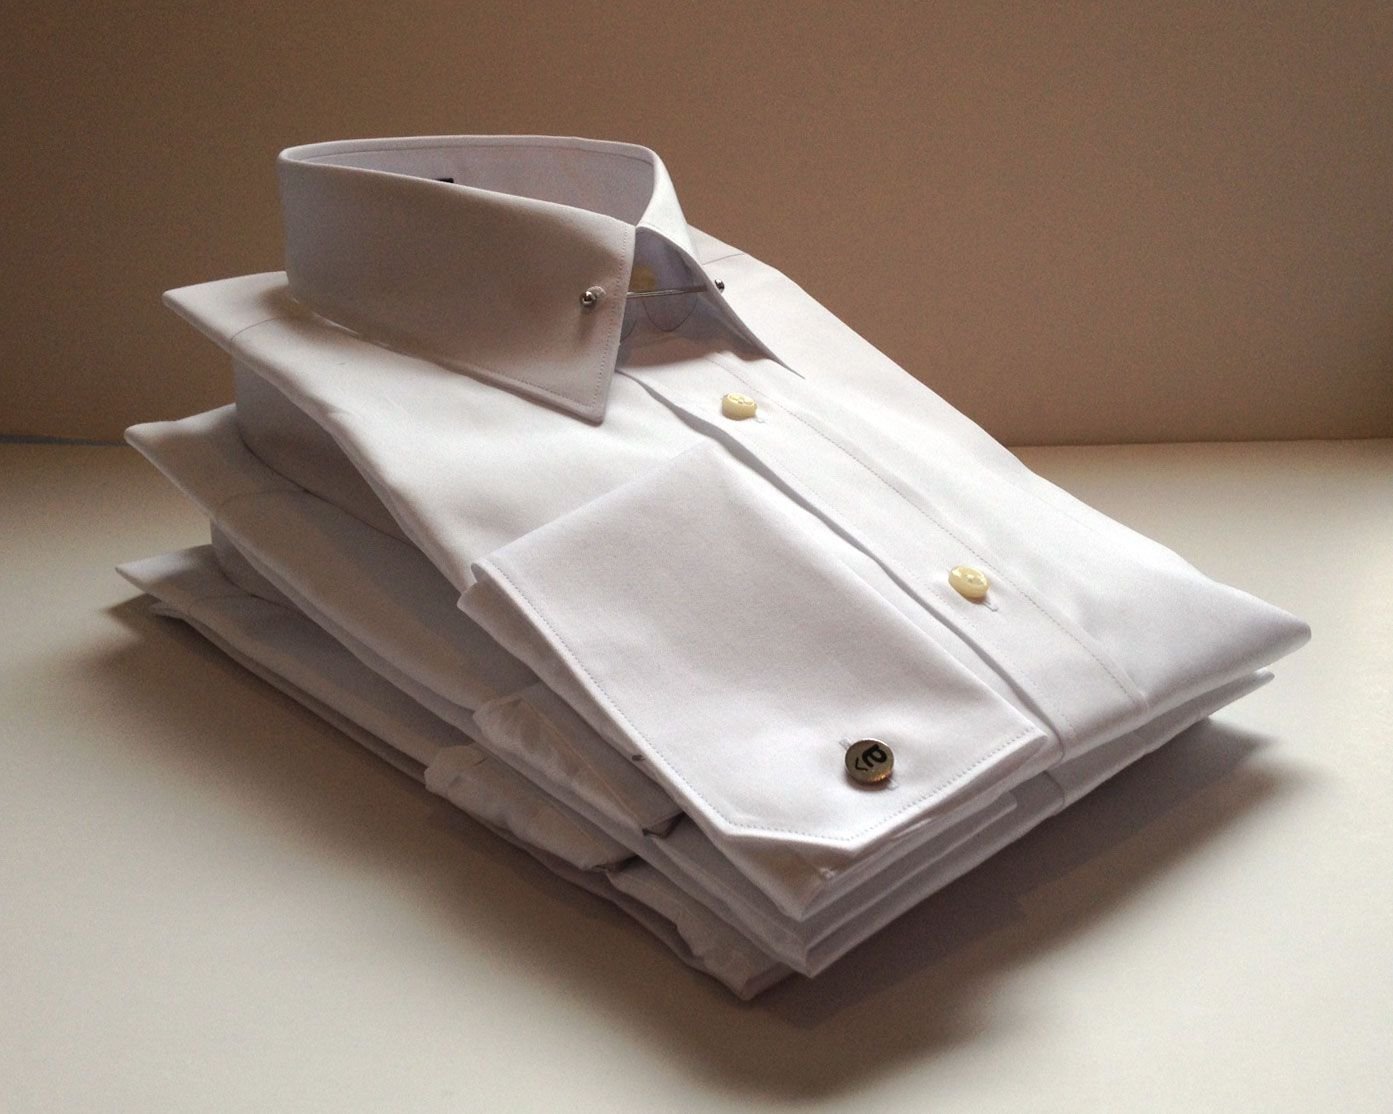 The classic Royal Poplin white dress shirt made from Egyptian cotton. What makes ours different is quality tailoring and materials for just $59 at AlaraShirt.com